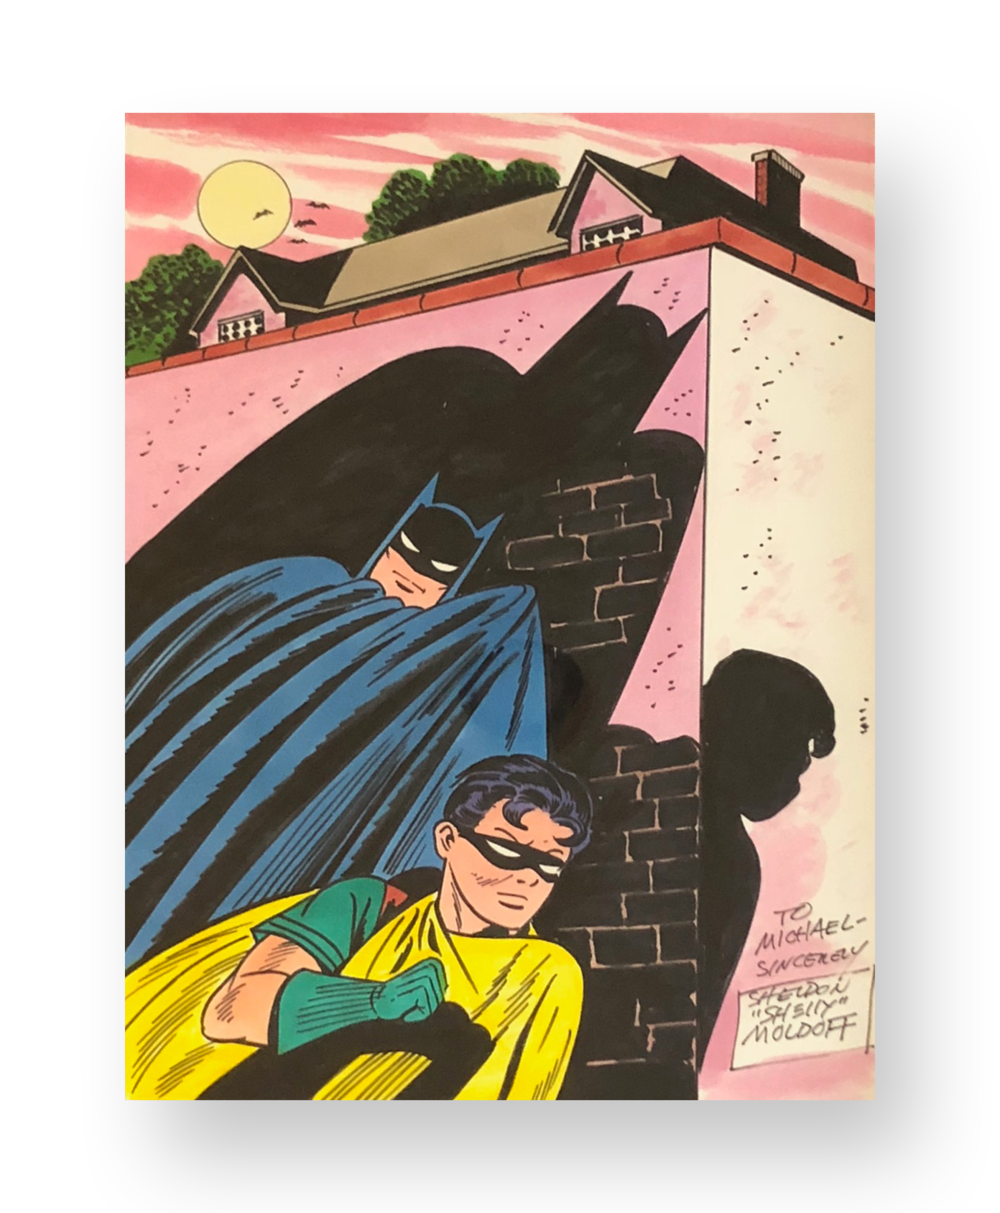 "Sheldon Moldoff  ""Batman and Robin""  Original vintage illustration  Mixed media on paper  9 x 12 inches  Circa 1990's"